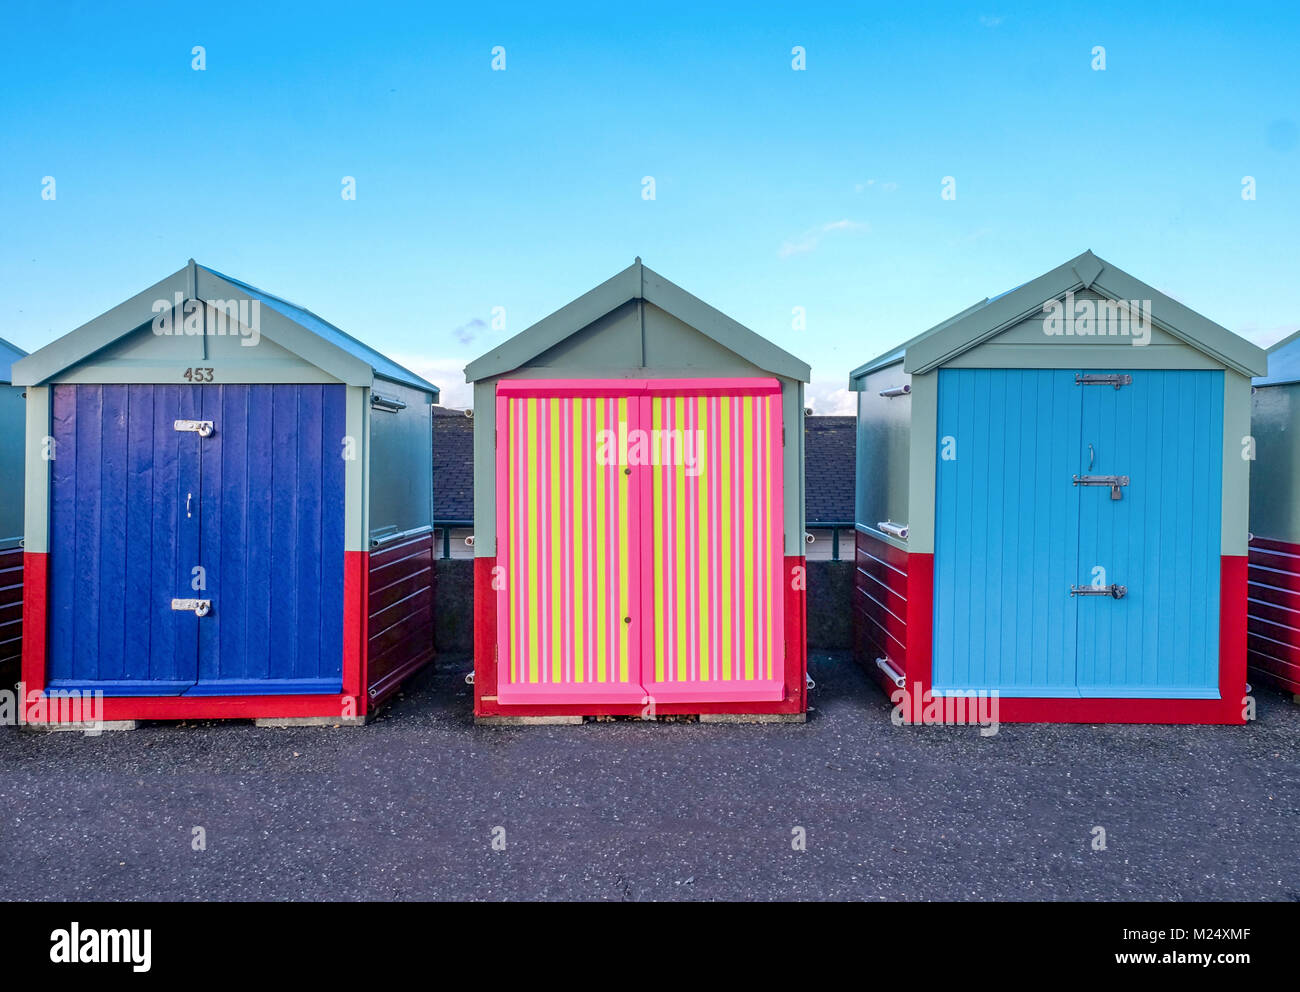 Brighton seafront three beach huts, two with blue doors and the one in the middle has a multi coloured door of yellow, - Stock Image